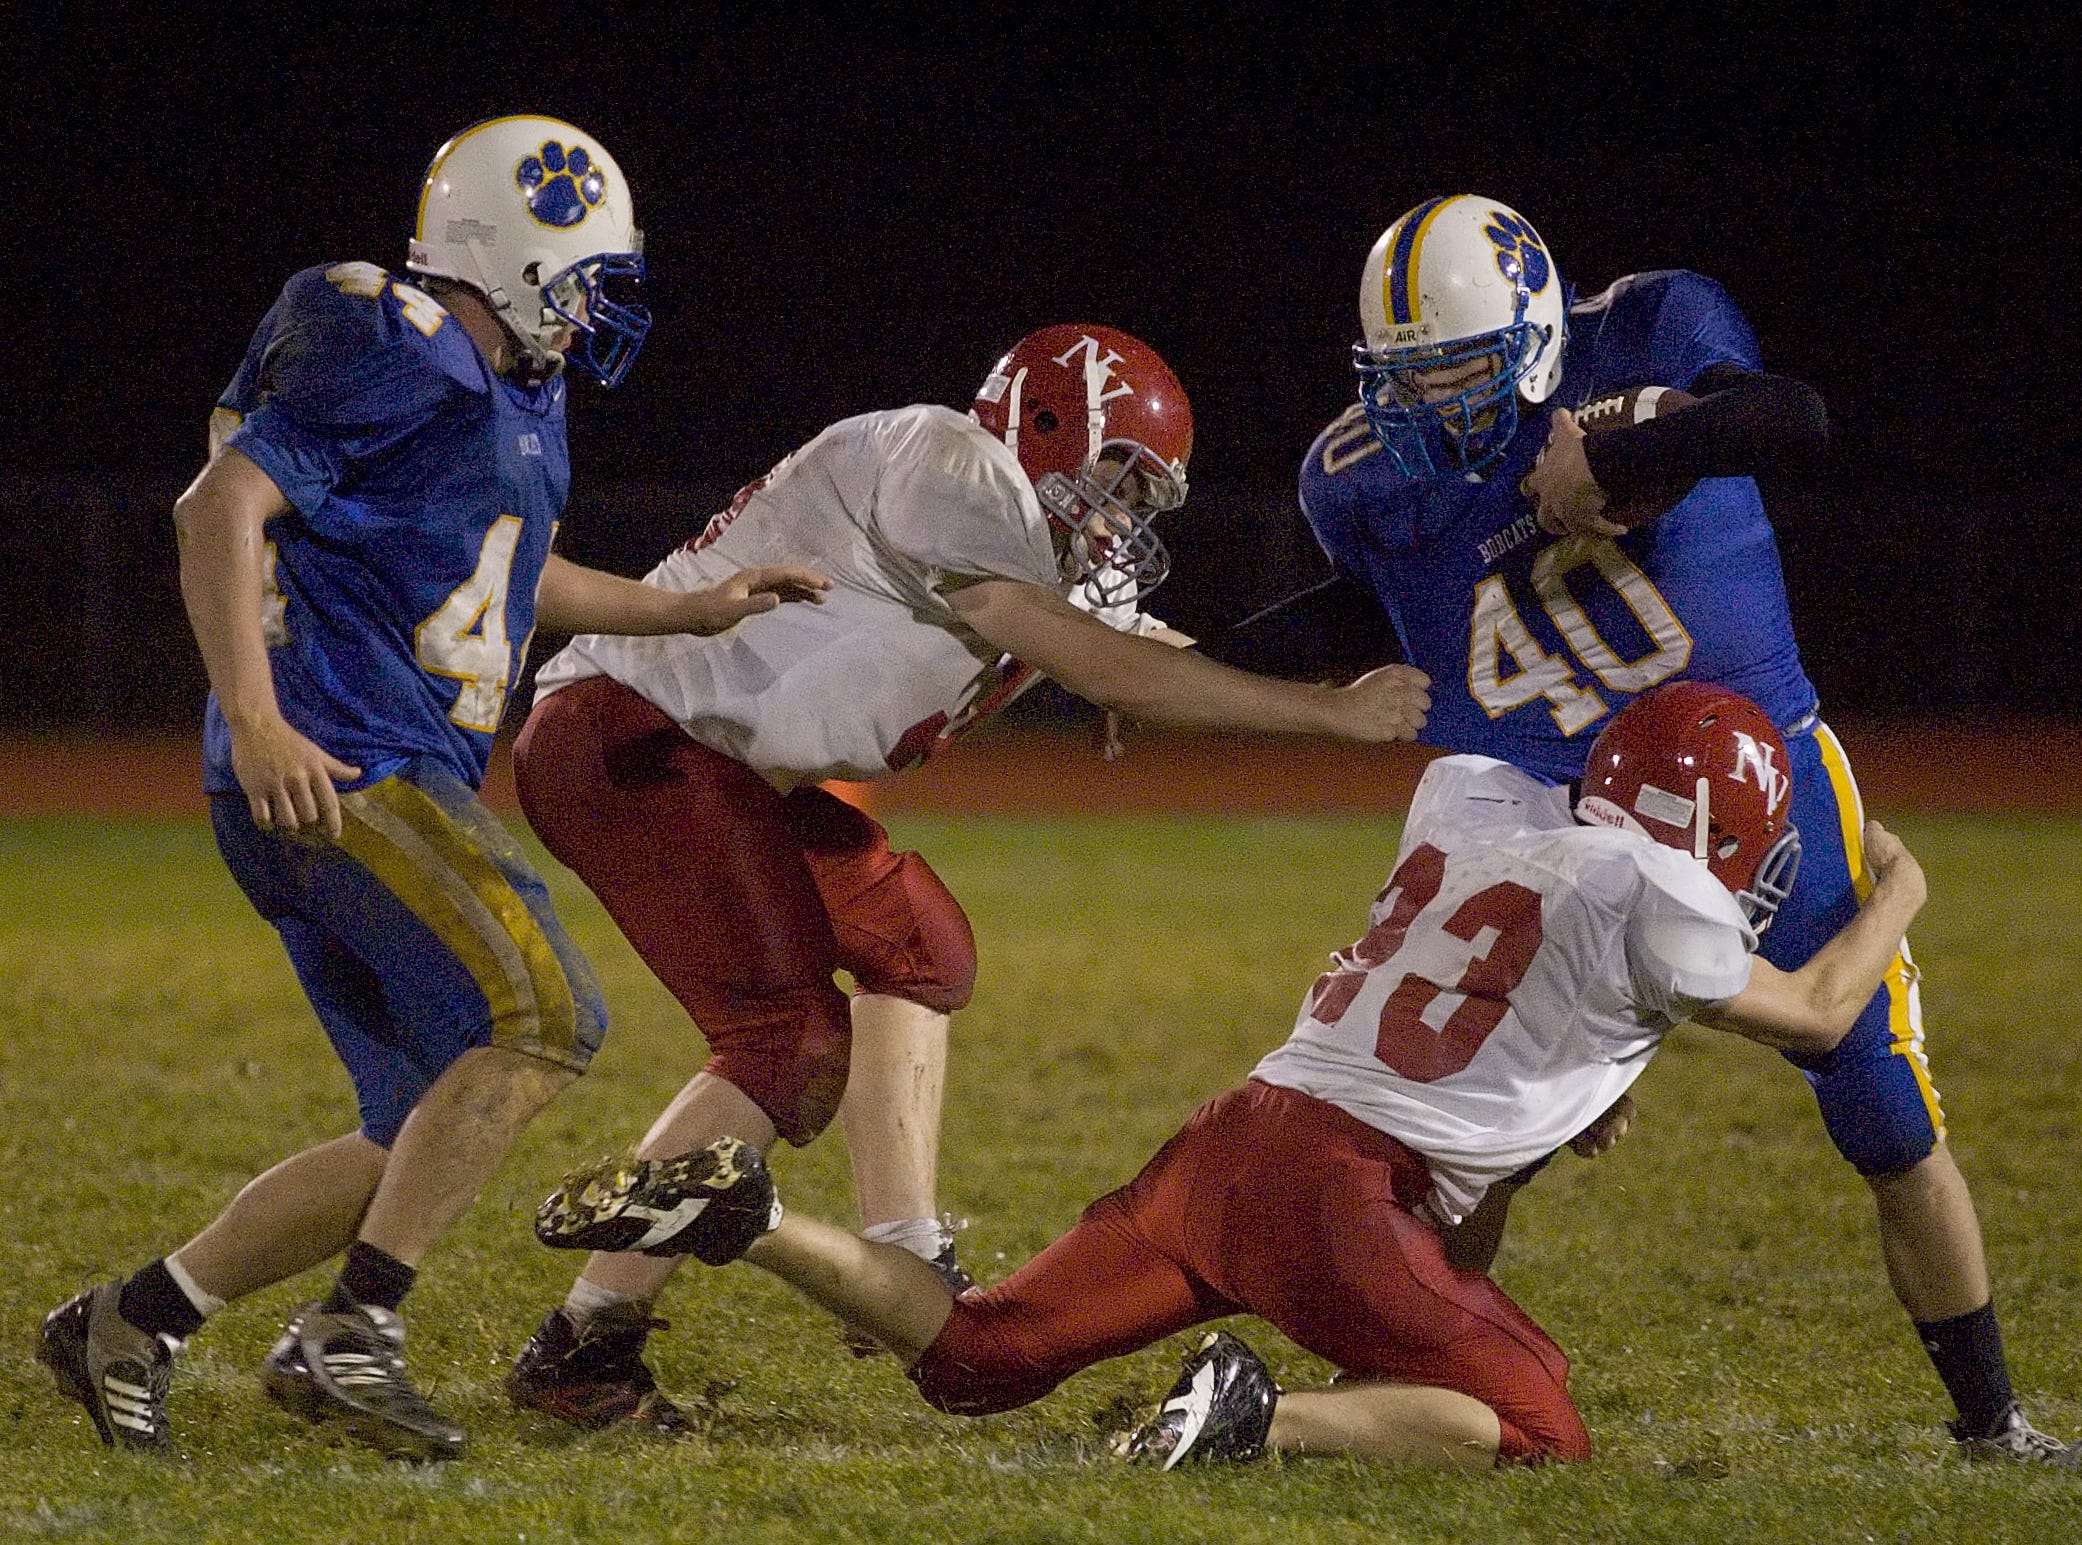 From 2009: Lansing's 44 Colden Knapp far left runs to help as Newark Valley's Spencer Dunn left and John Stagg right pull down Lansing's Ryan Todd during the second quarter of the game on Friday at Lansing.